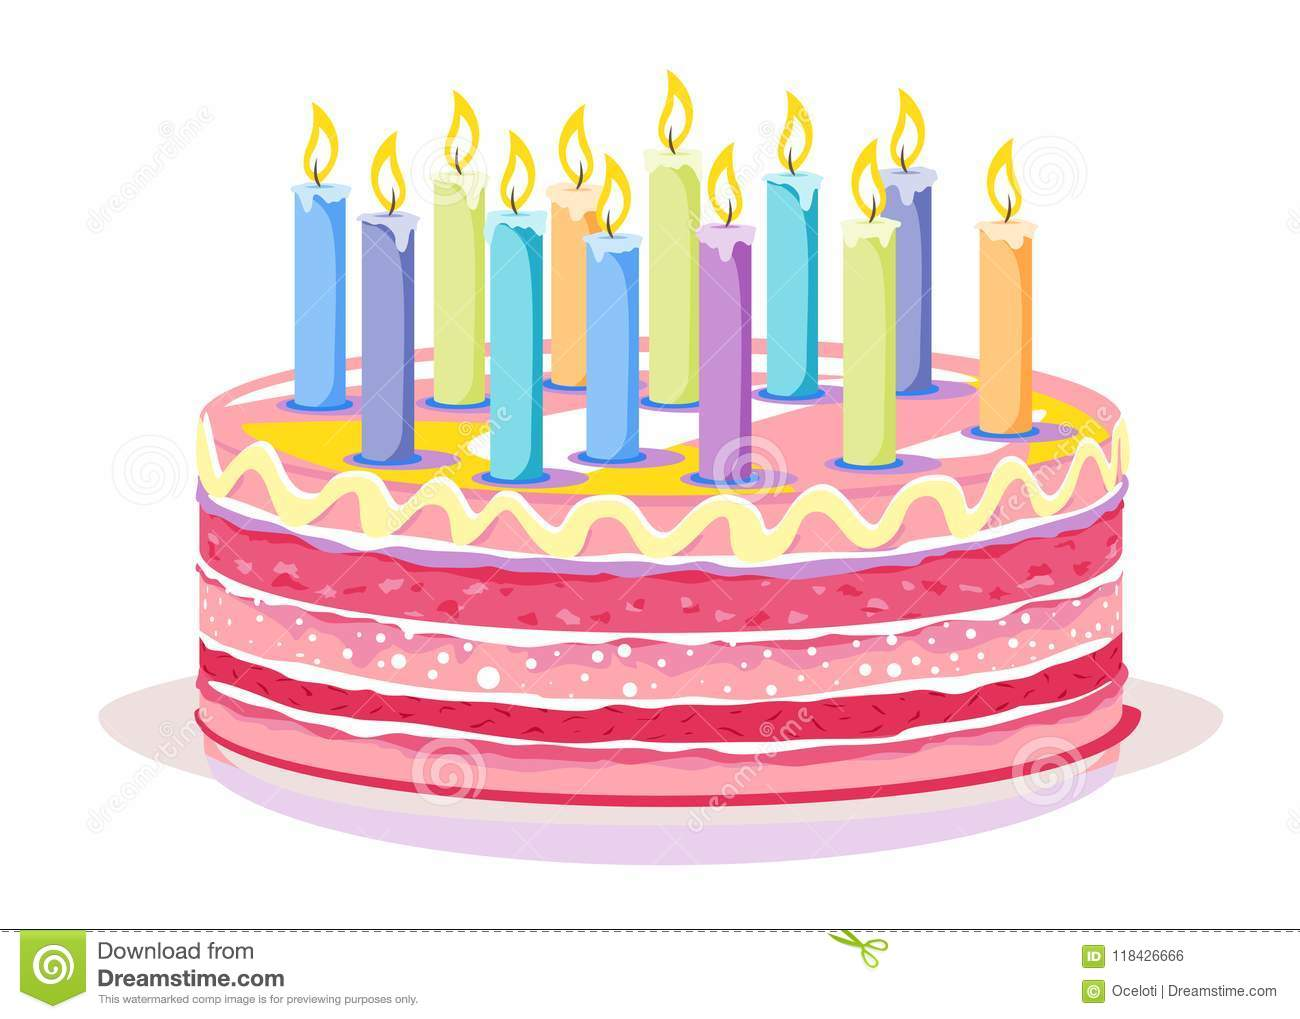 One Big Pink Sweet Birthday Cake With Many Candles Isolated